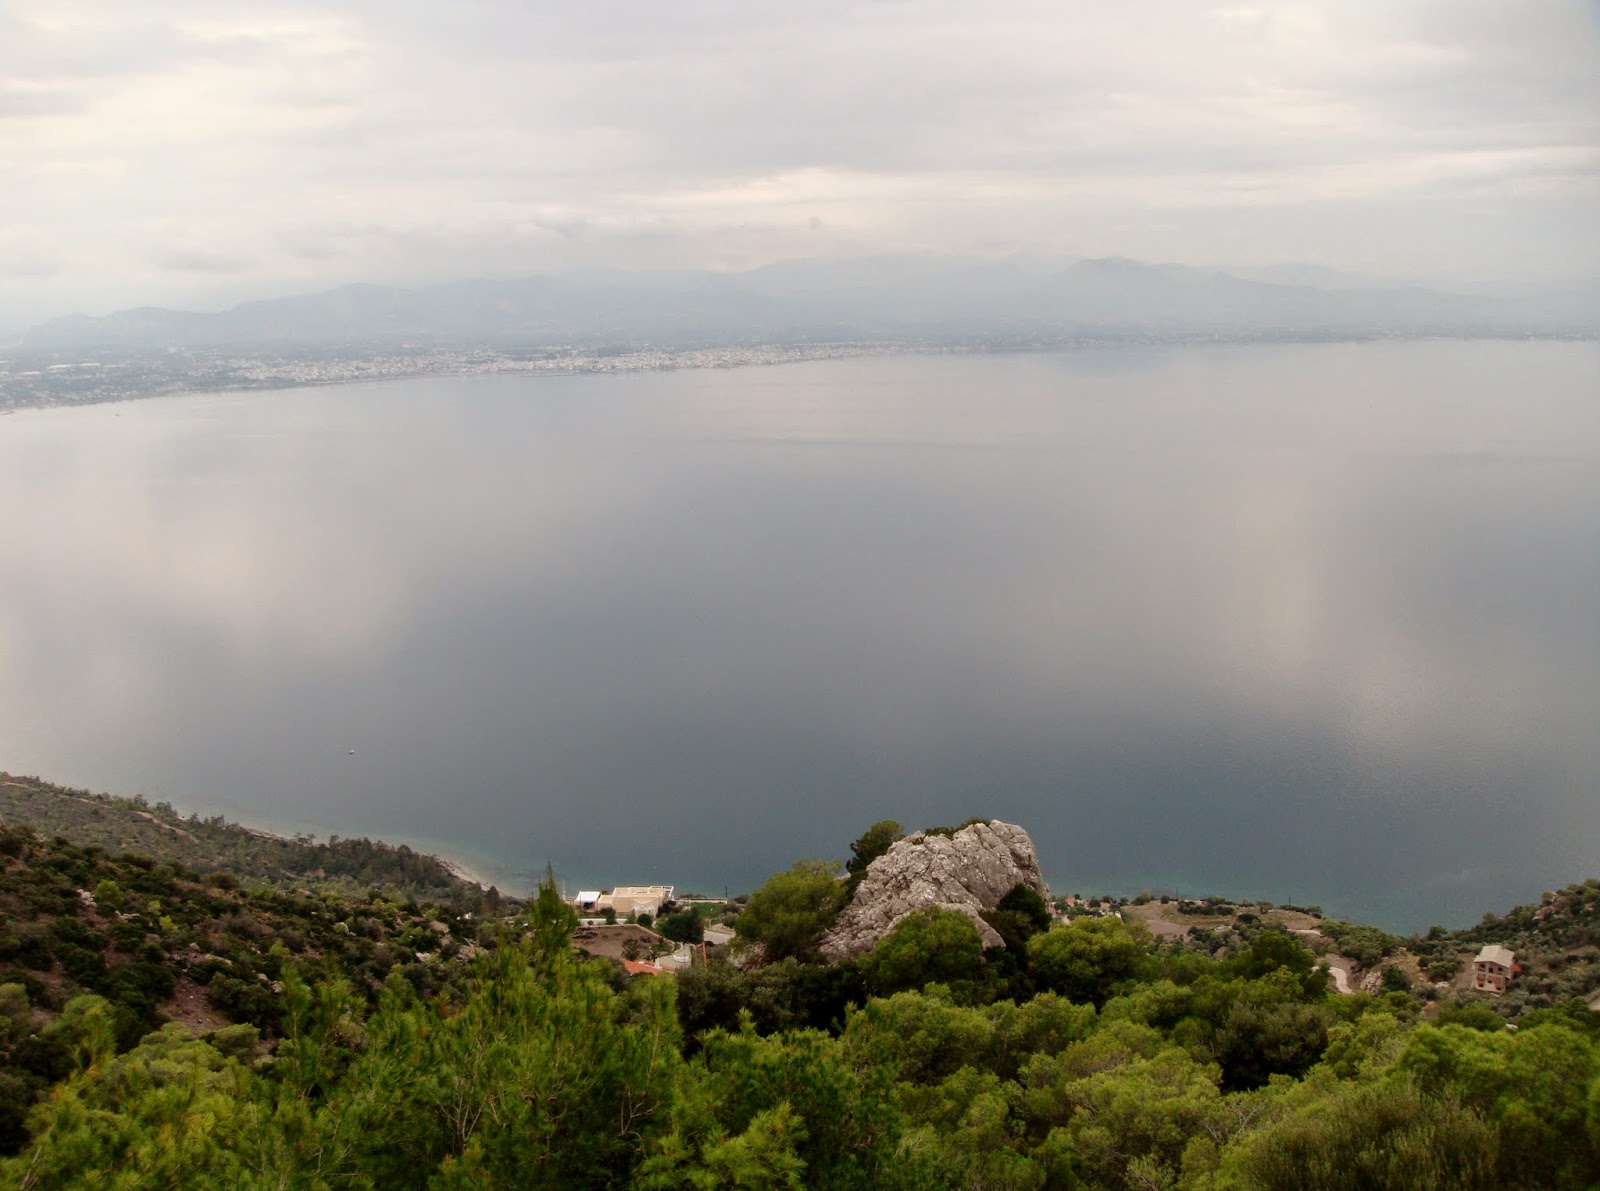 Korinthian Gulf, seen from Loutraki